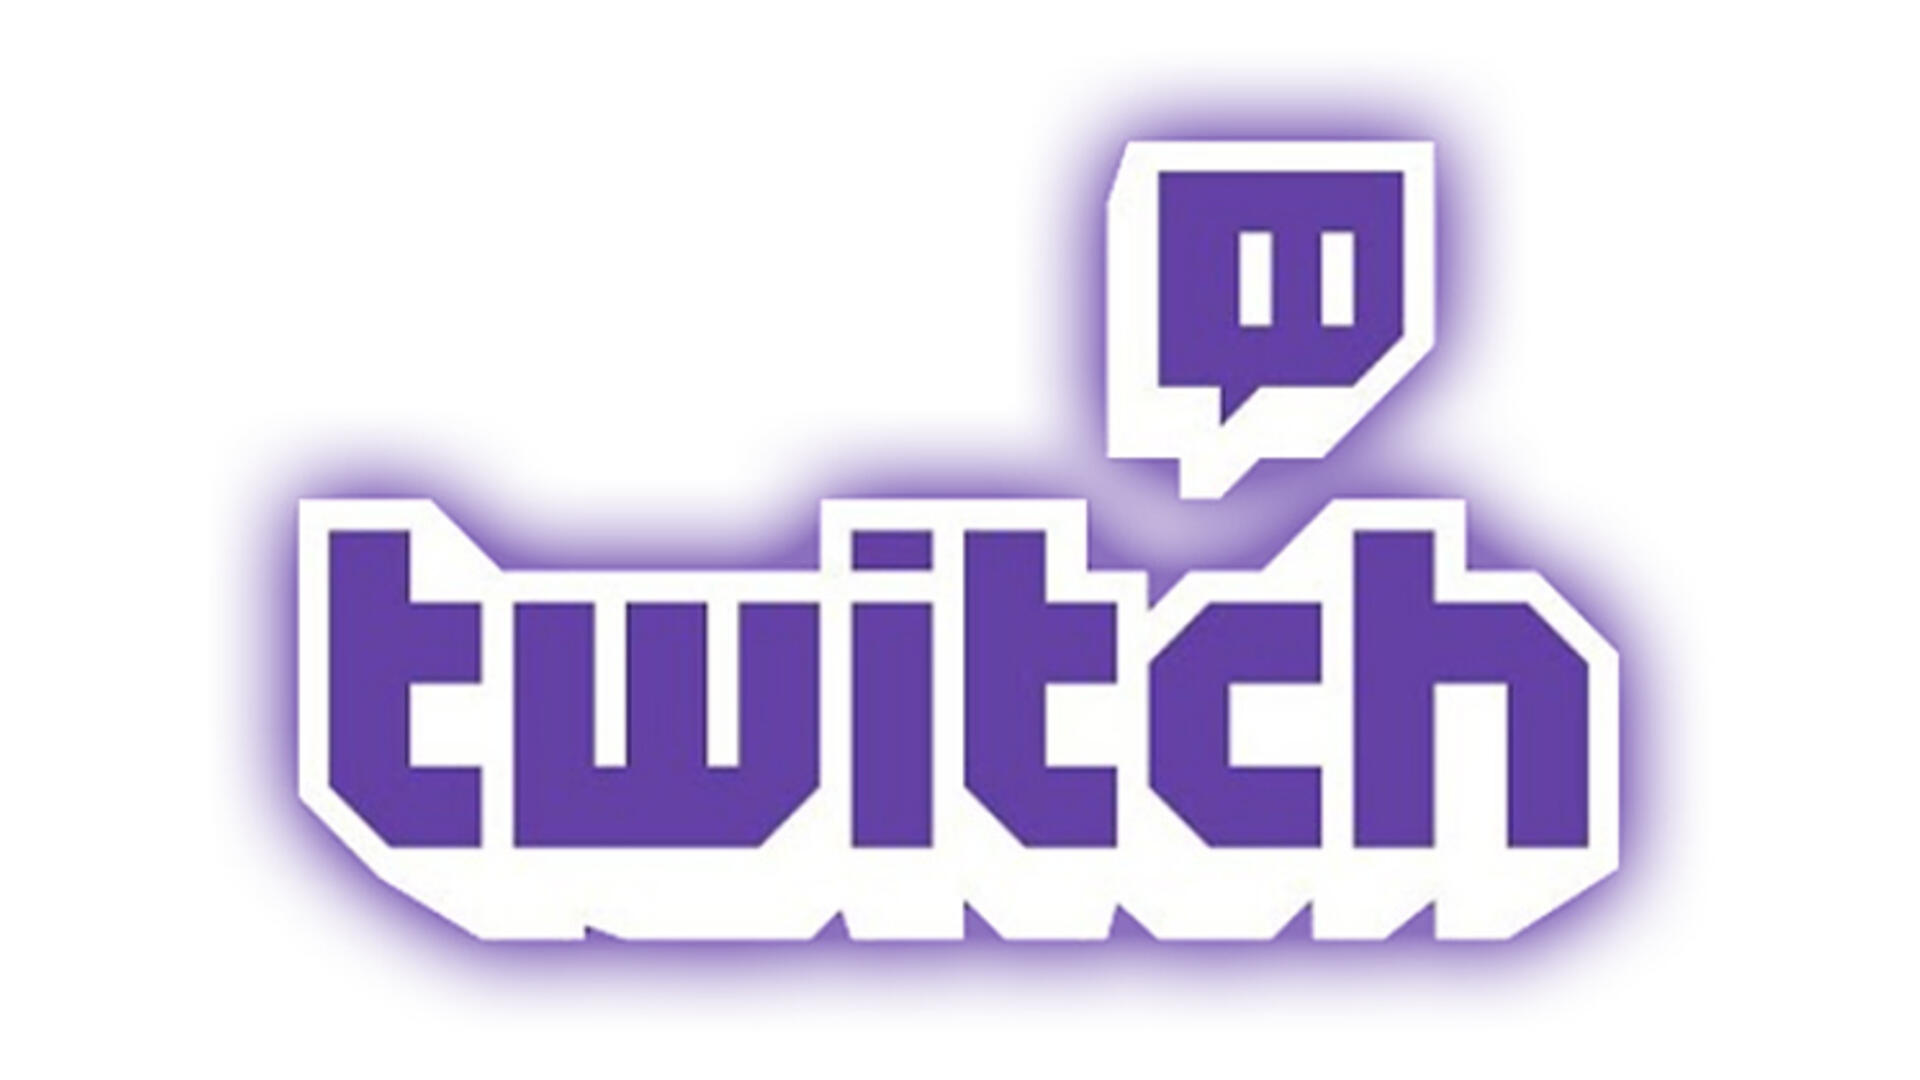 Twitch Hit By Layoffs Even as Company Plans 'Aggressive Growth'